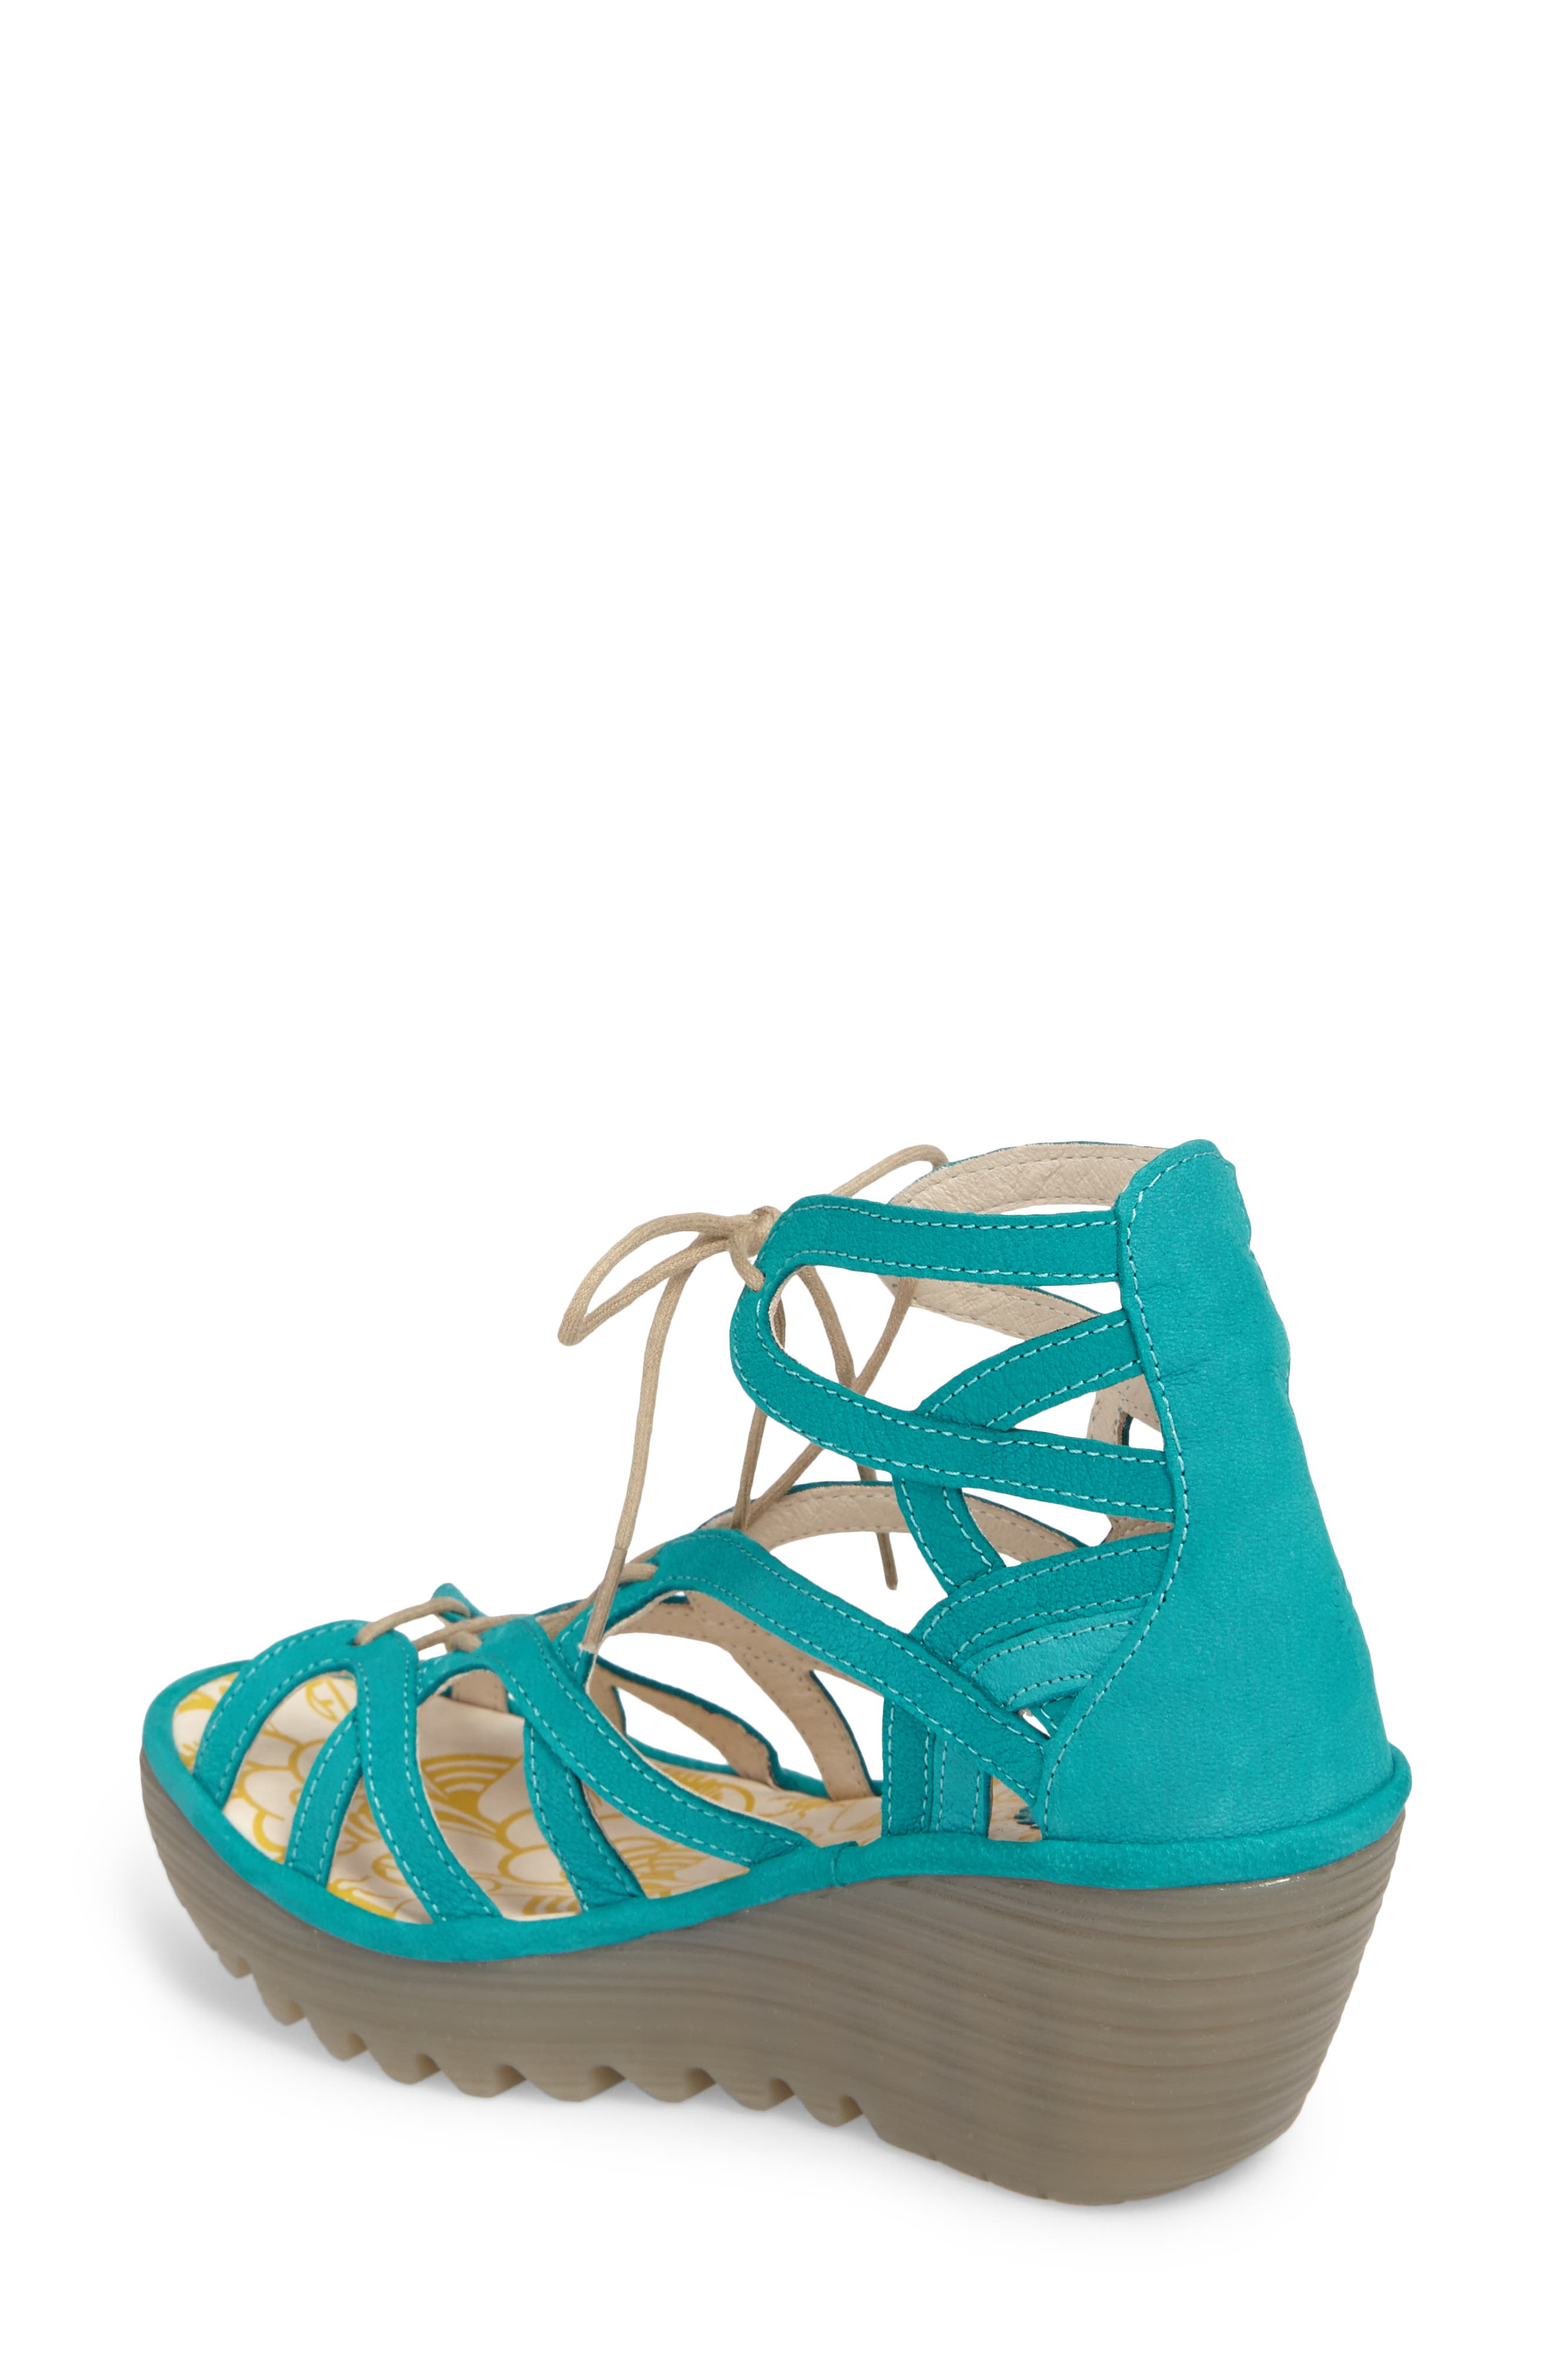 FLY LONDON, 'Yuke' Platform Wedge Sandal, Alternate thumbnail 2, color, VERDIGRIS LEATHER